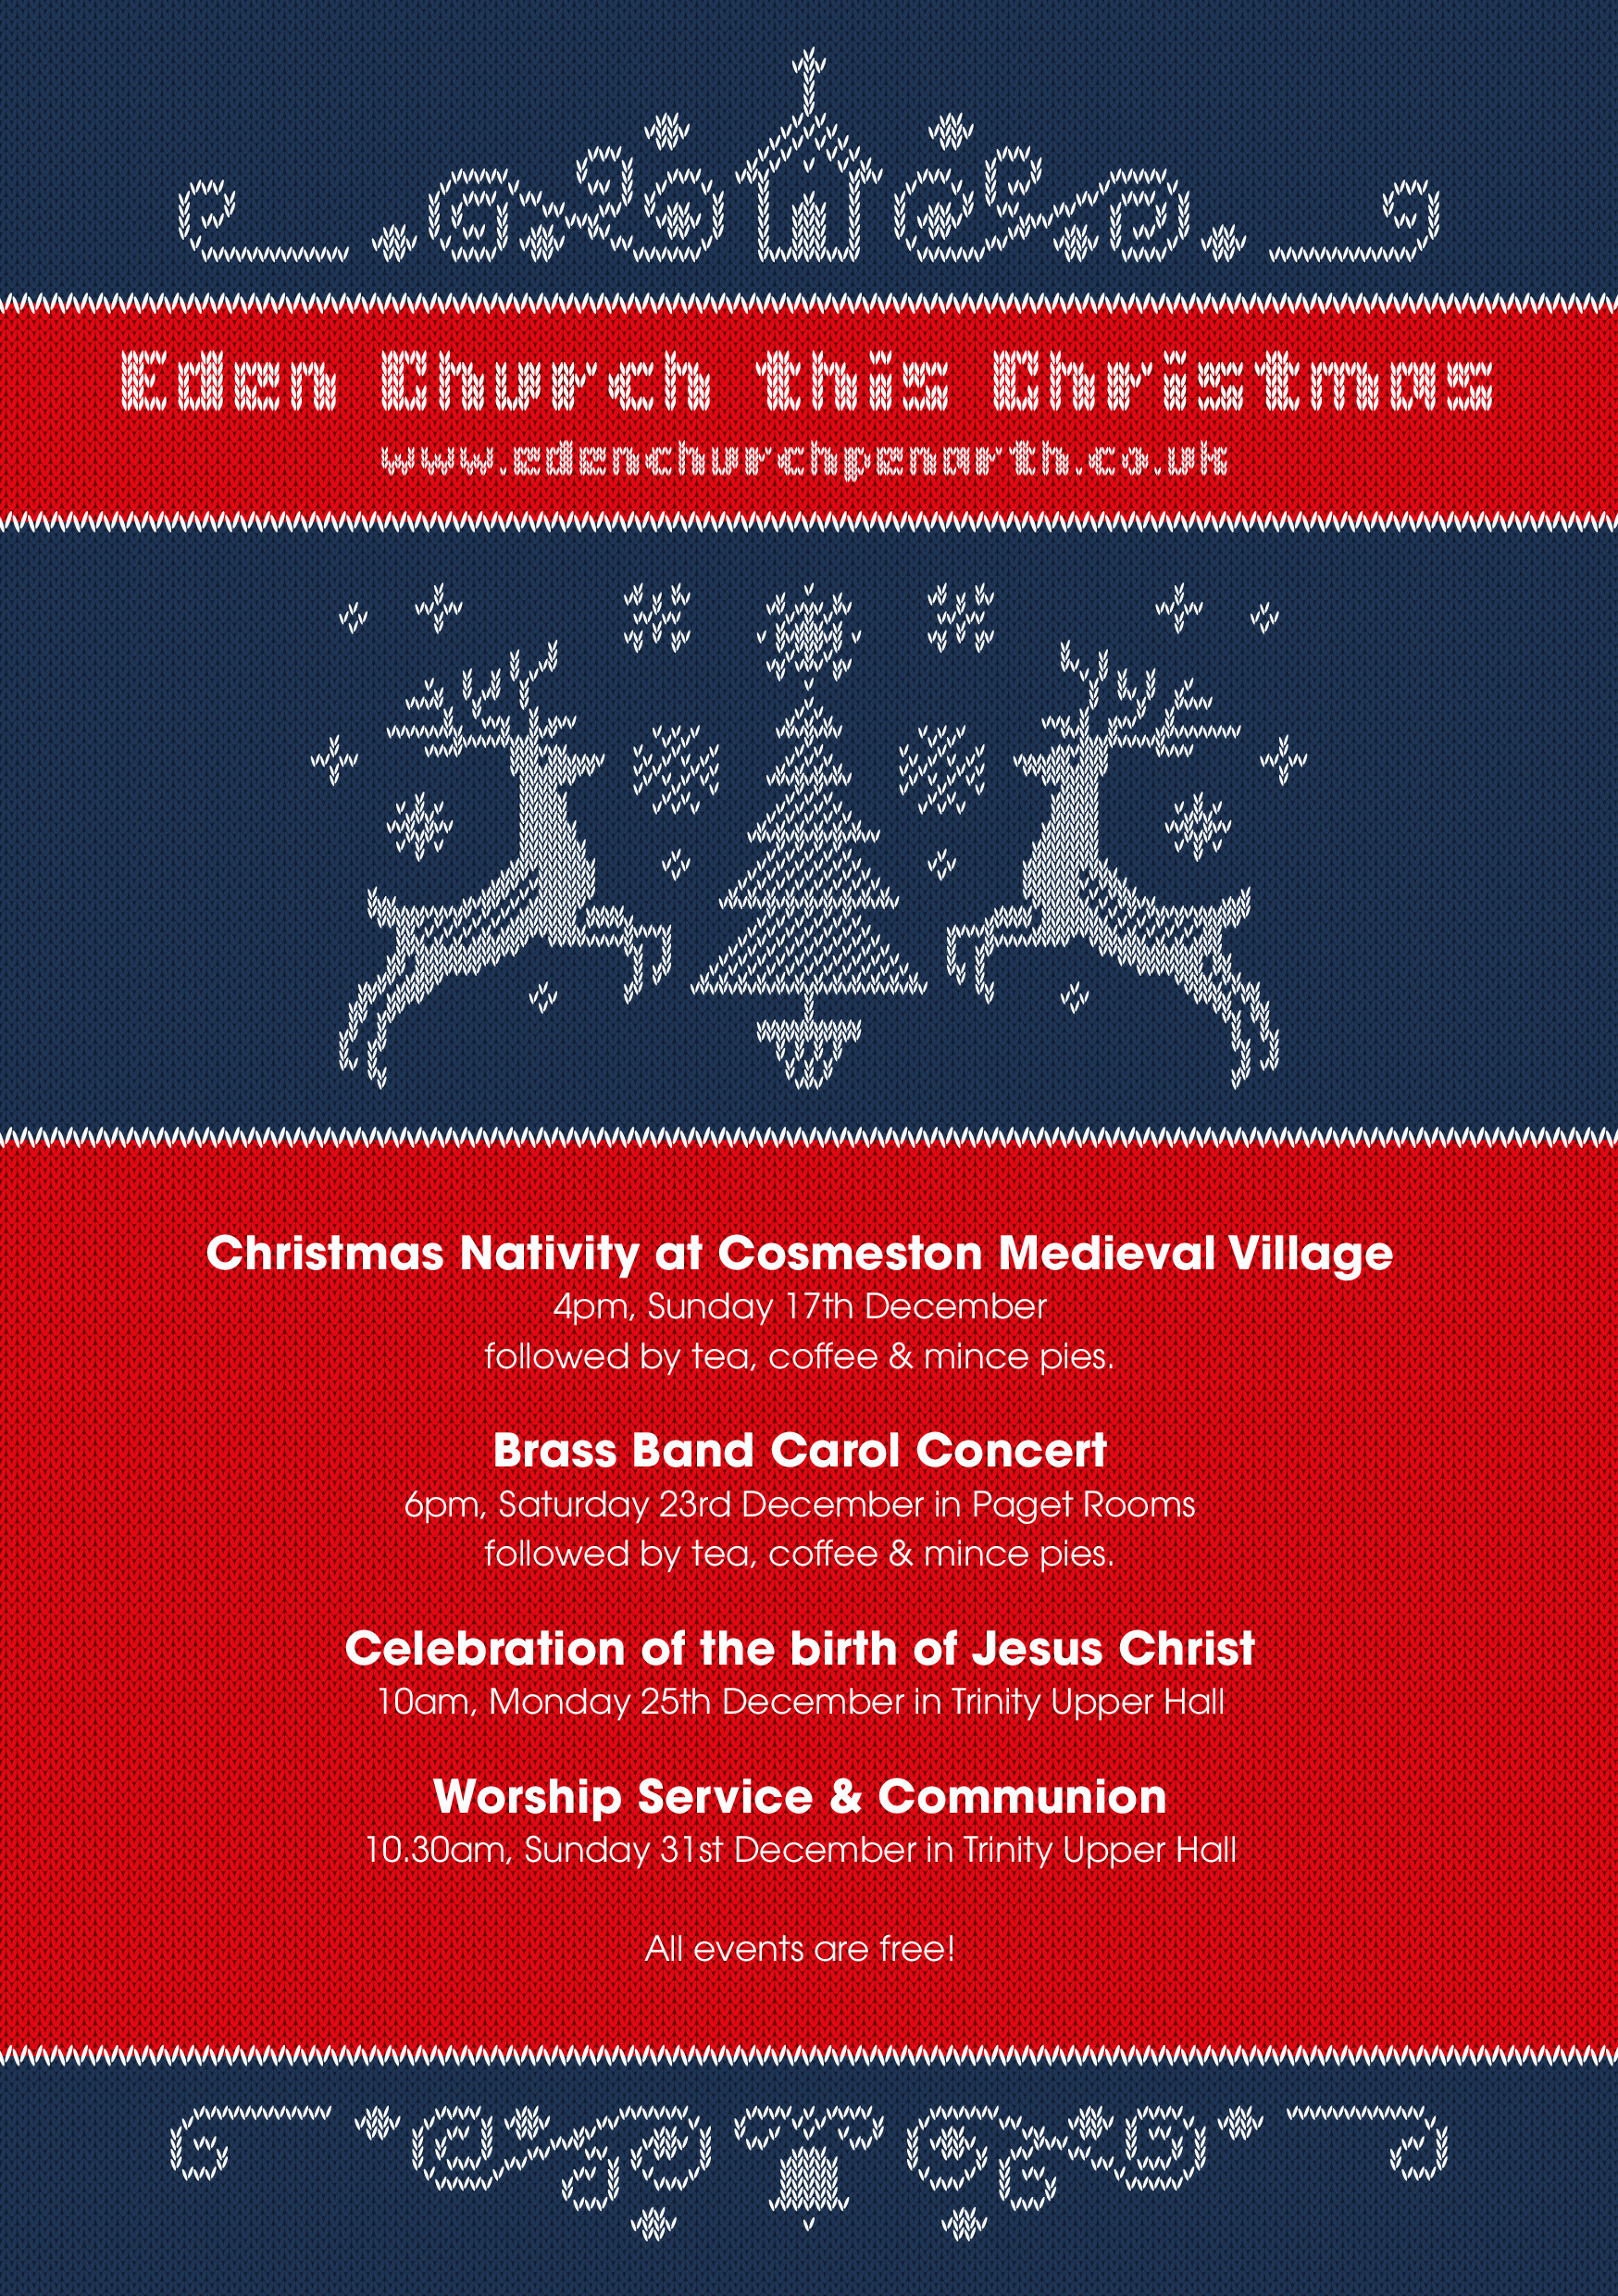 Our Christmas Events